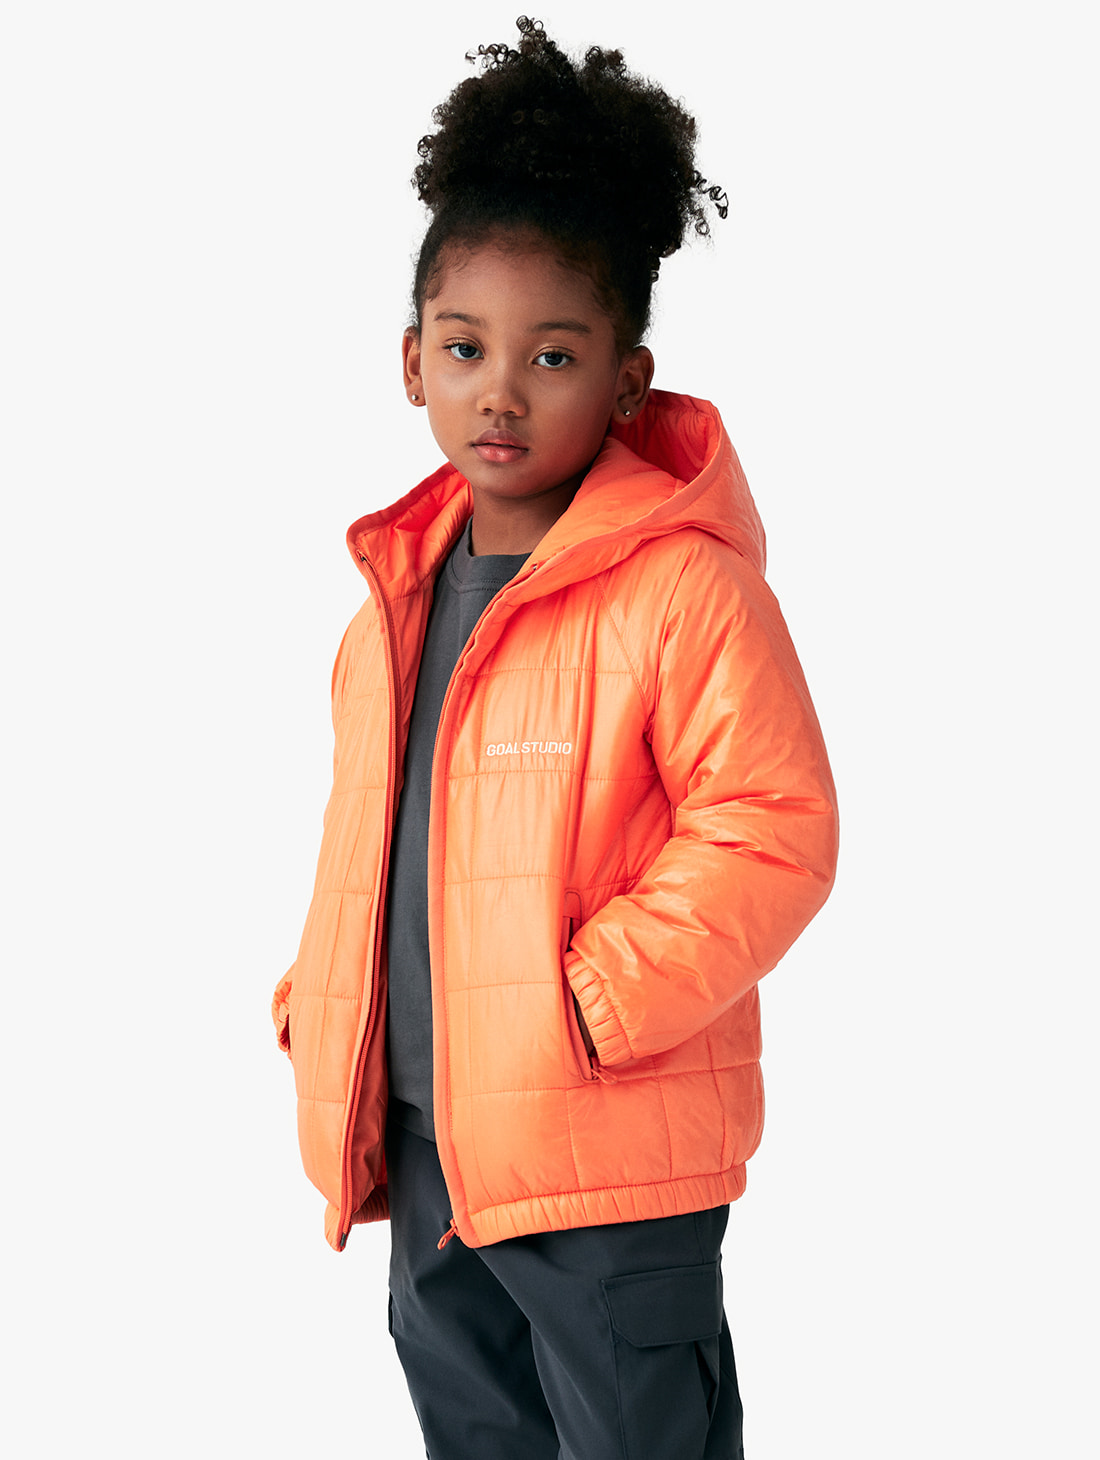 GOALSTUDIO (KIDS) QUILTED PUFFER JACKET (3 Colors)